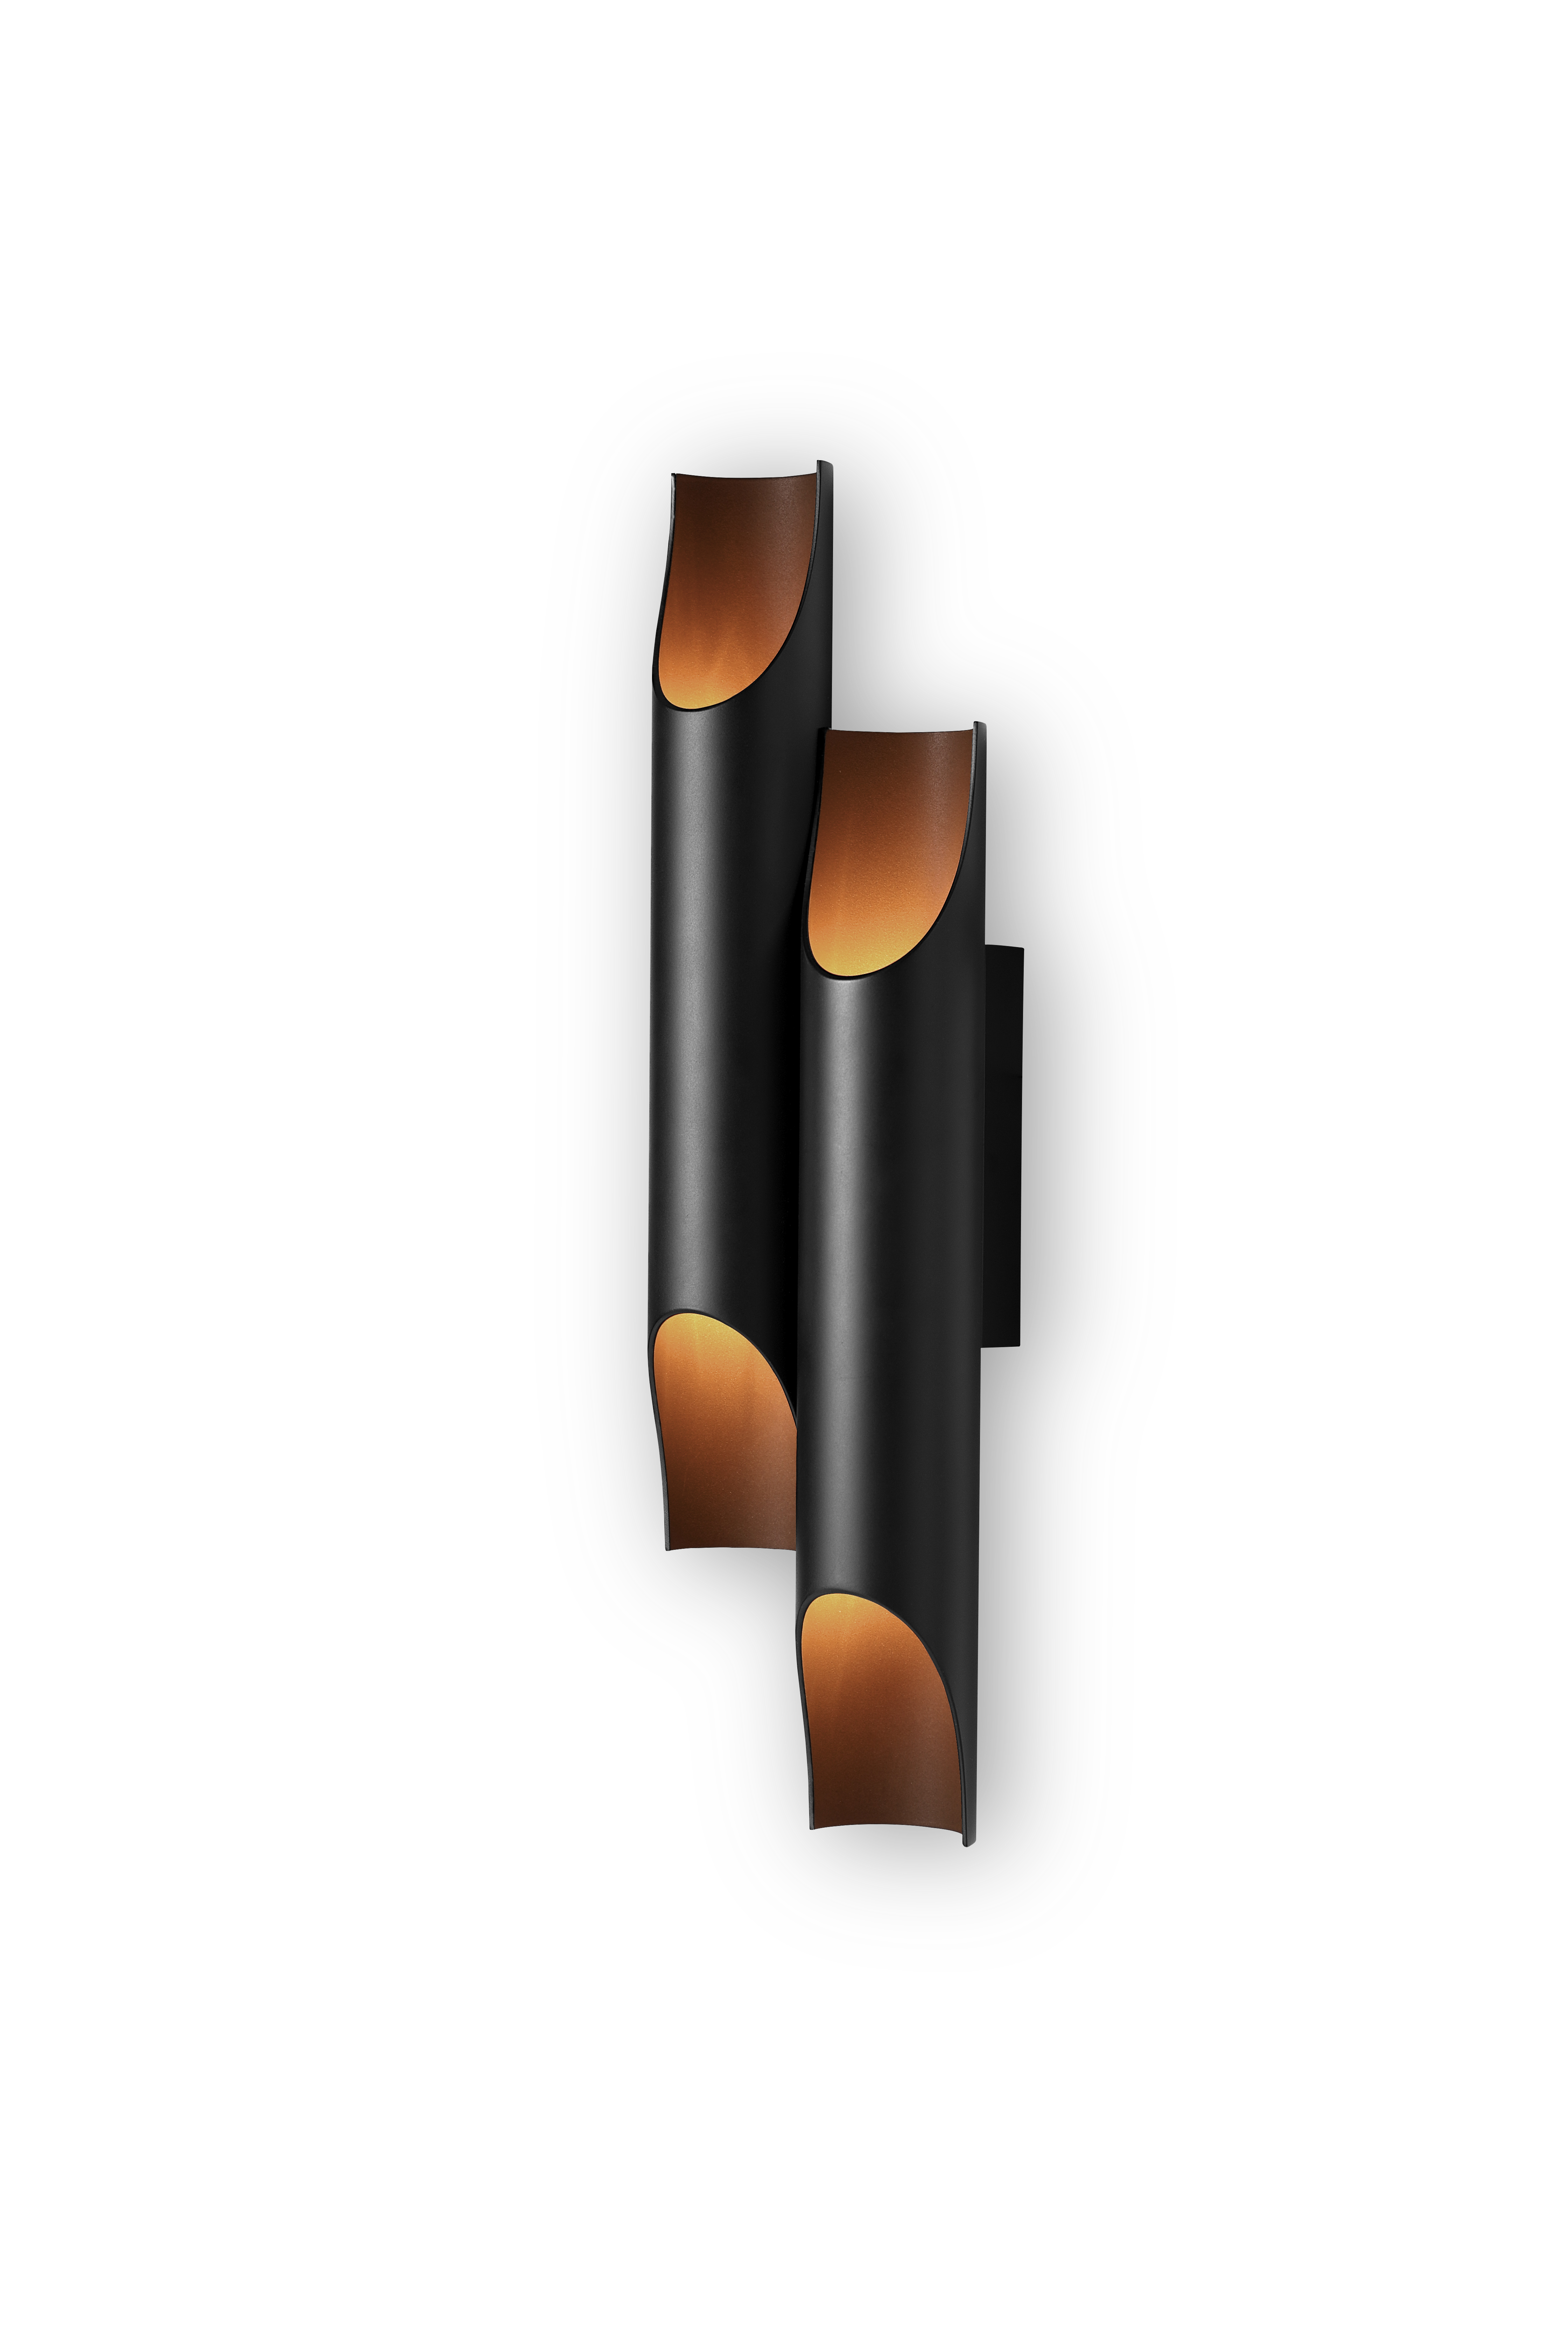 These Wall Lamps Are Going To Make A Statement At 100% Design London 7 100% design These Wall Lamps Are Going To Make A Statement At 100% Design London These Wall Lamps Are Going To Make A Statement At 100 Design London 7